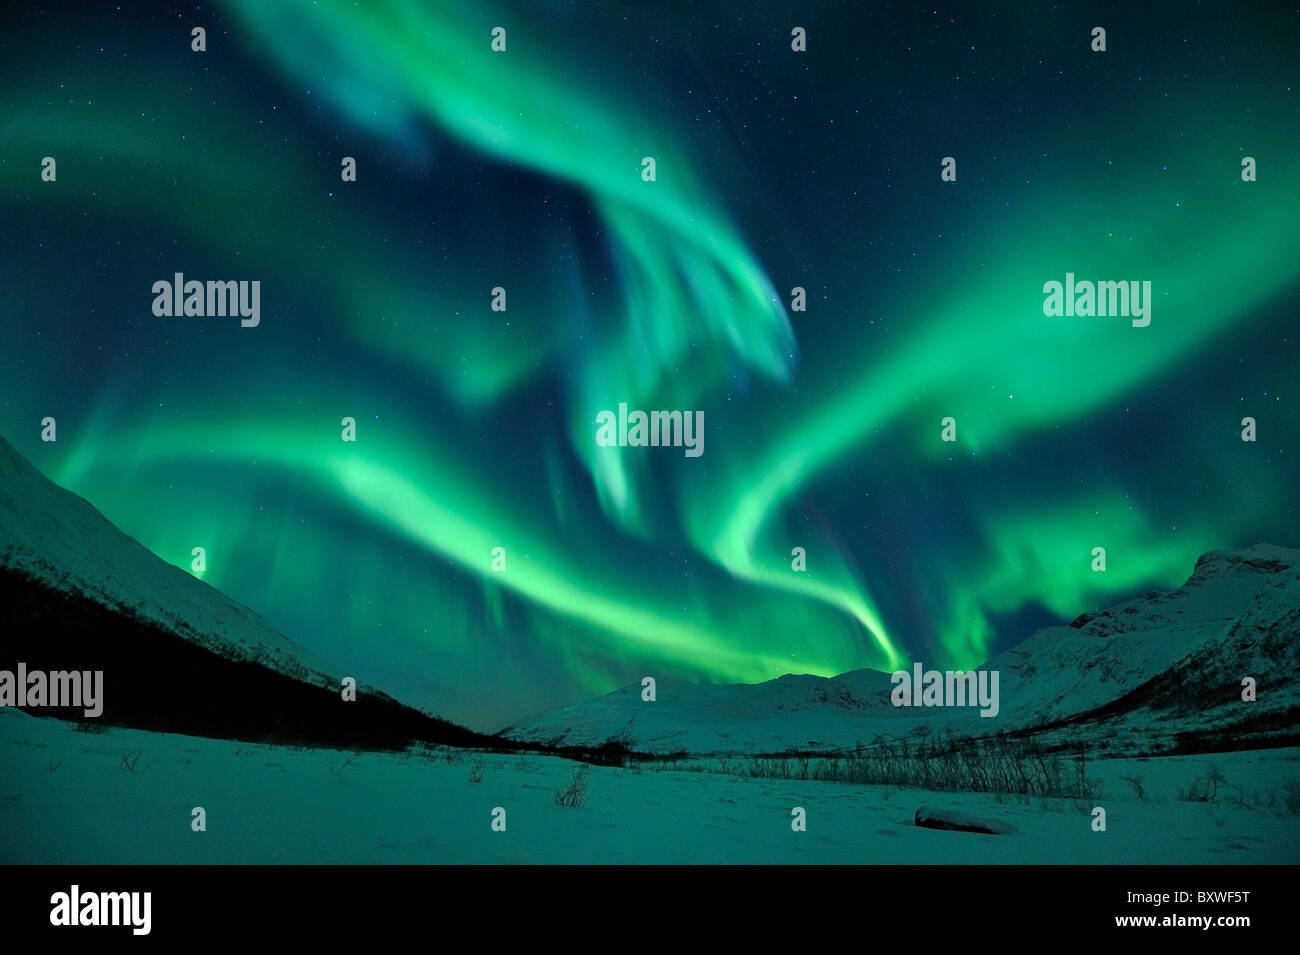 Northern Lights (Aurora Borealis) in North Norway Stock Photo